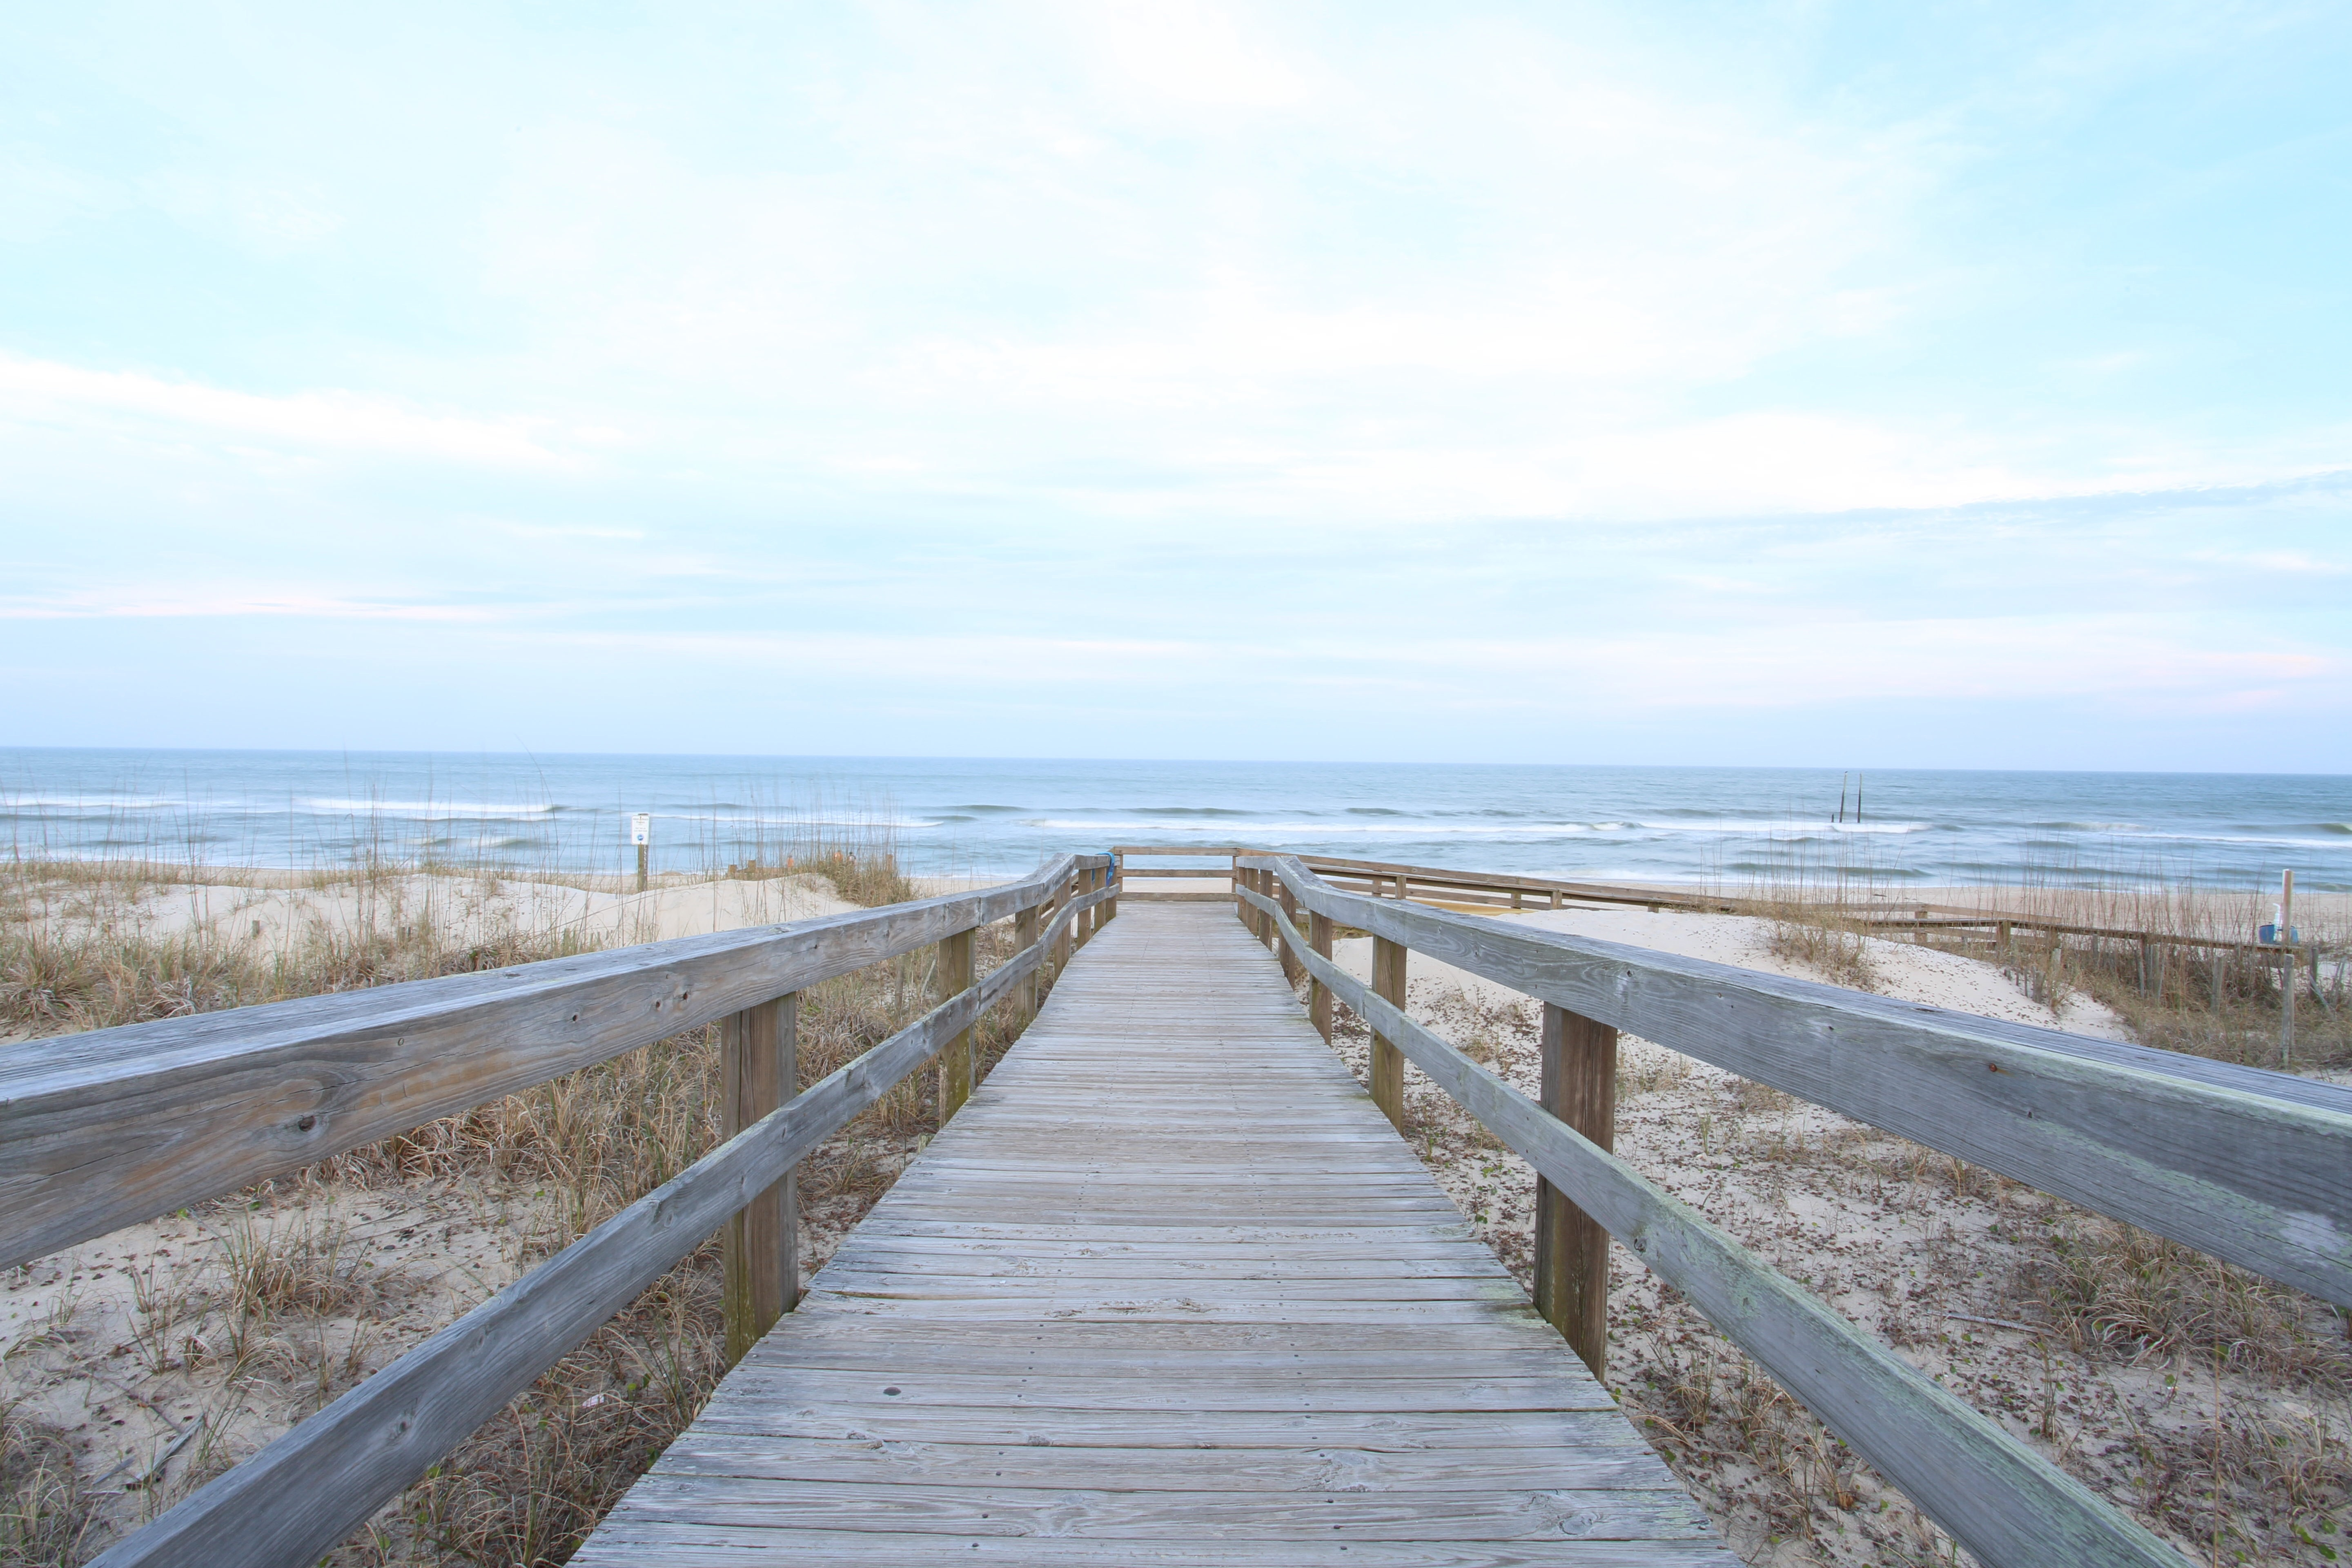 A boardwalk on an empty sandy beach